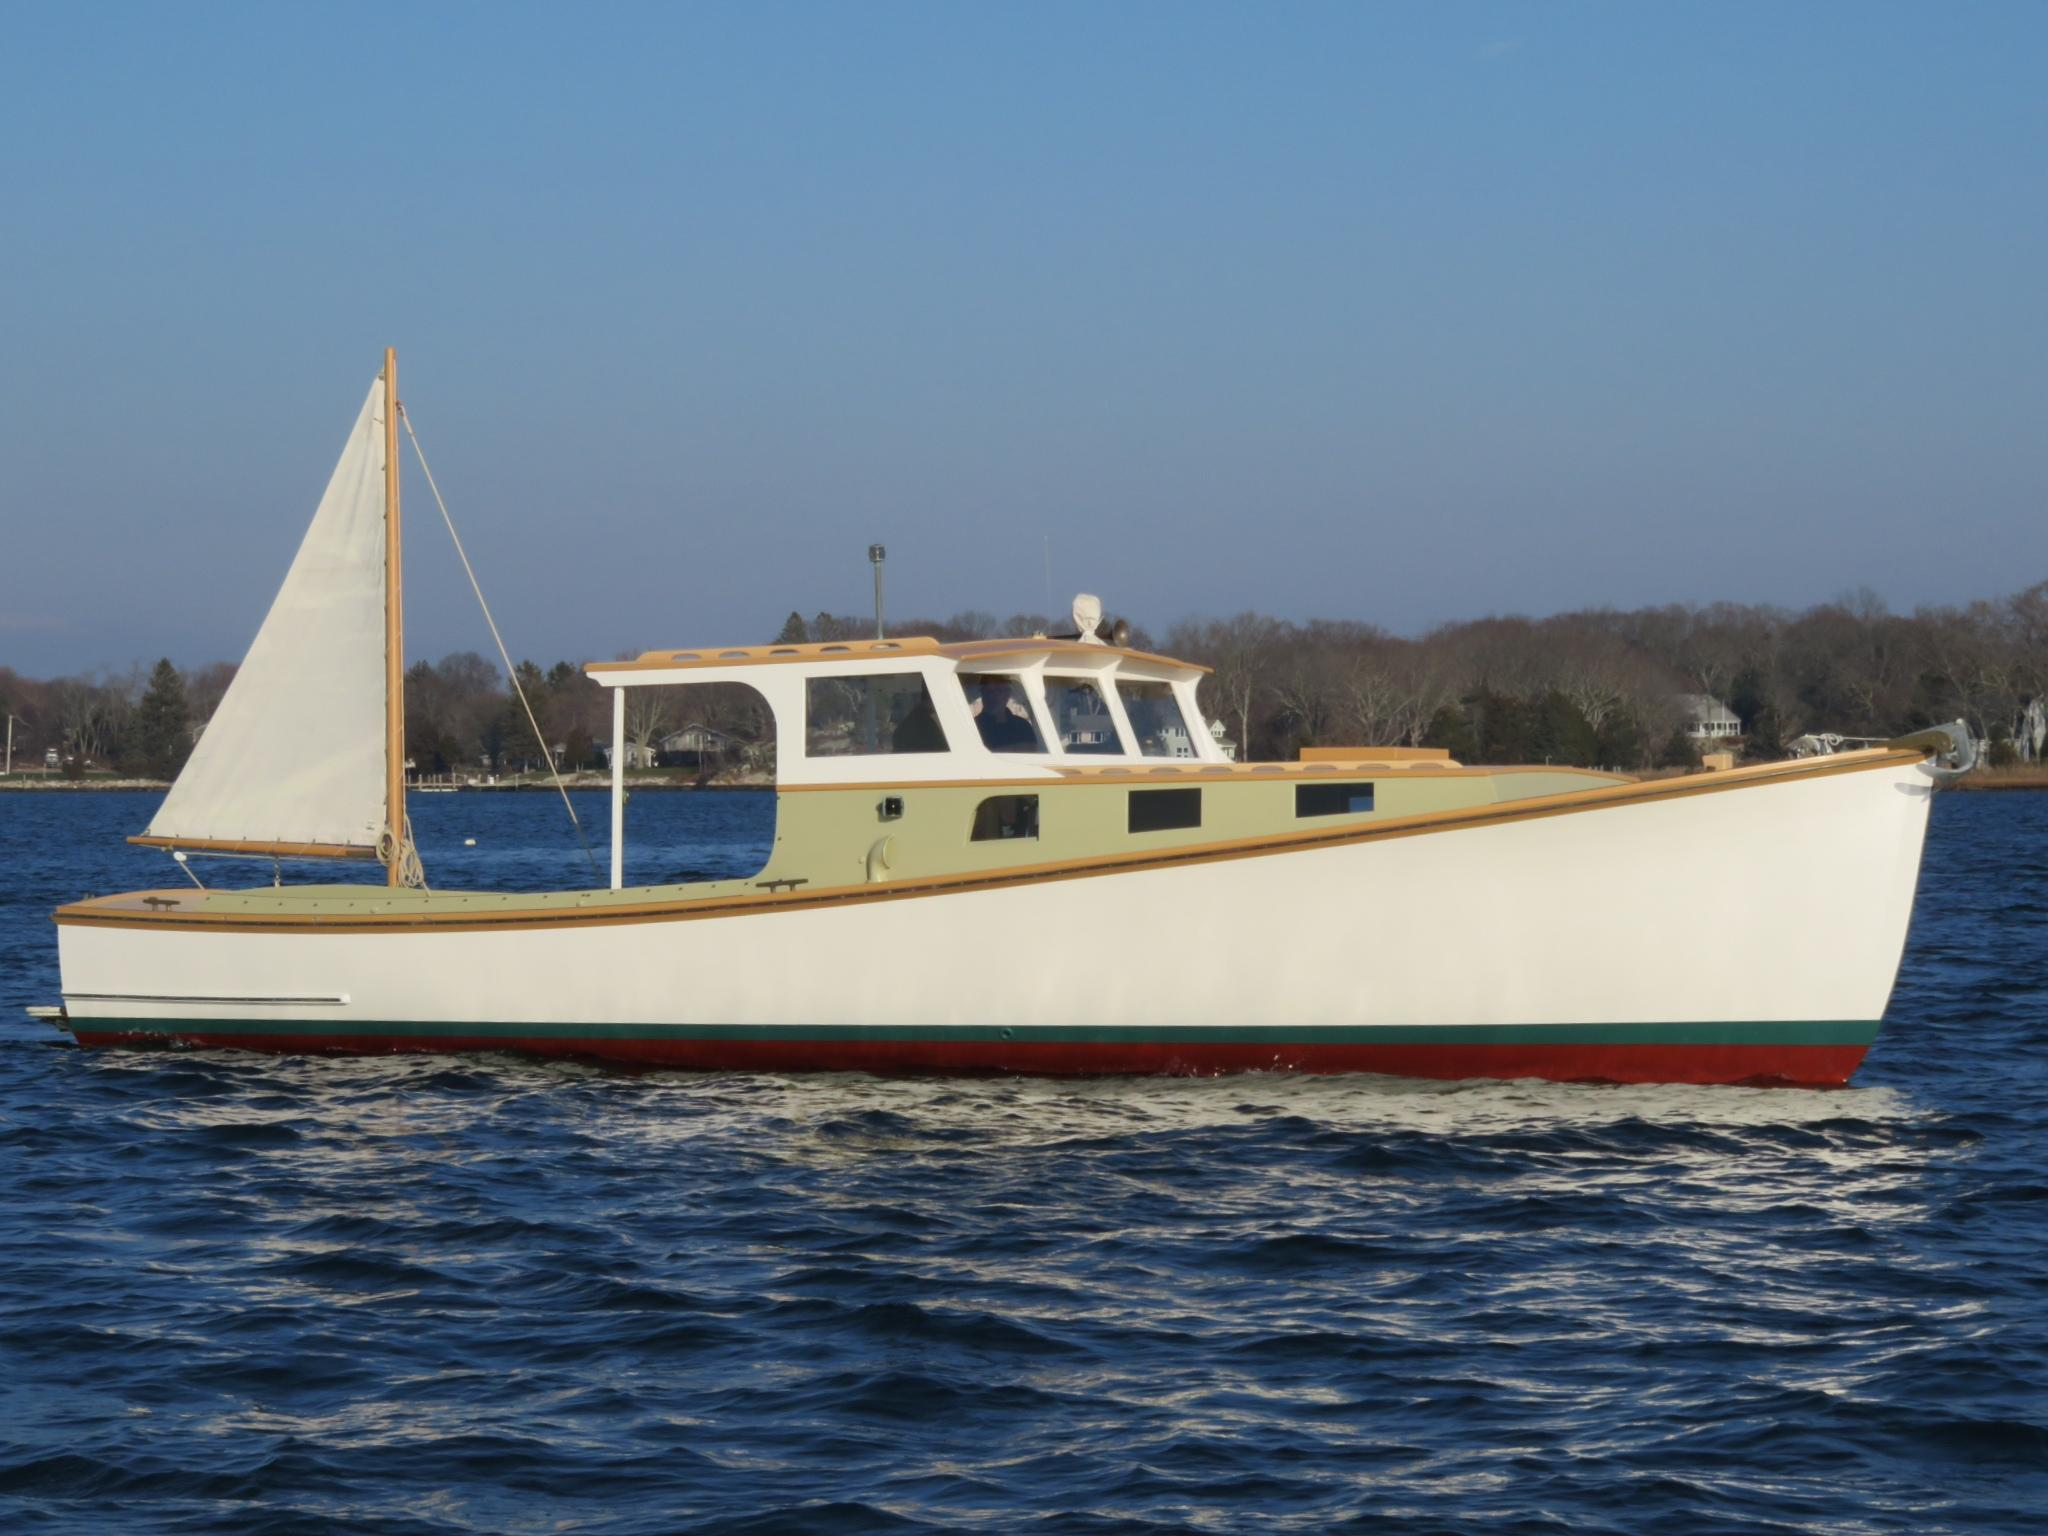 1955 Rockland Boat Company Lobster Boat Power Boat For Sale - www.yachtworld.com